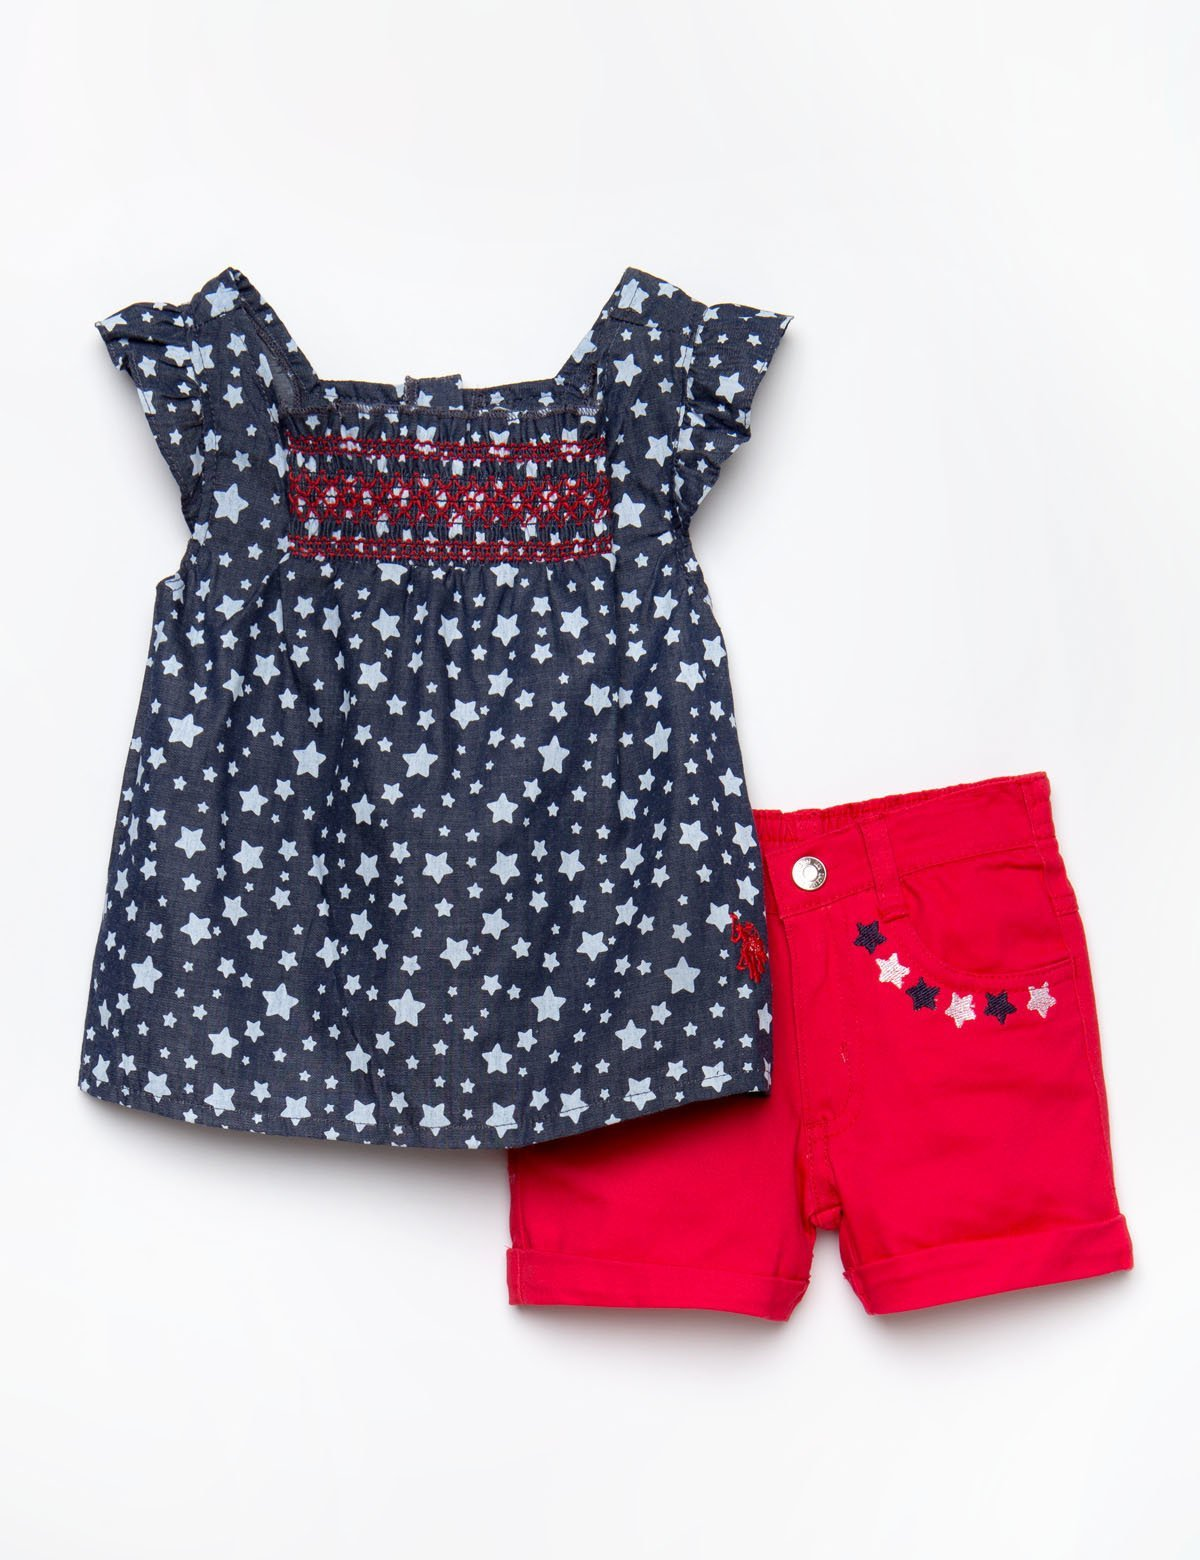 TODDLER 2 PIECE SET - SMOCKED TOP & SHORTS